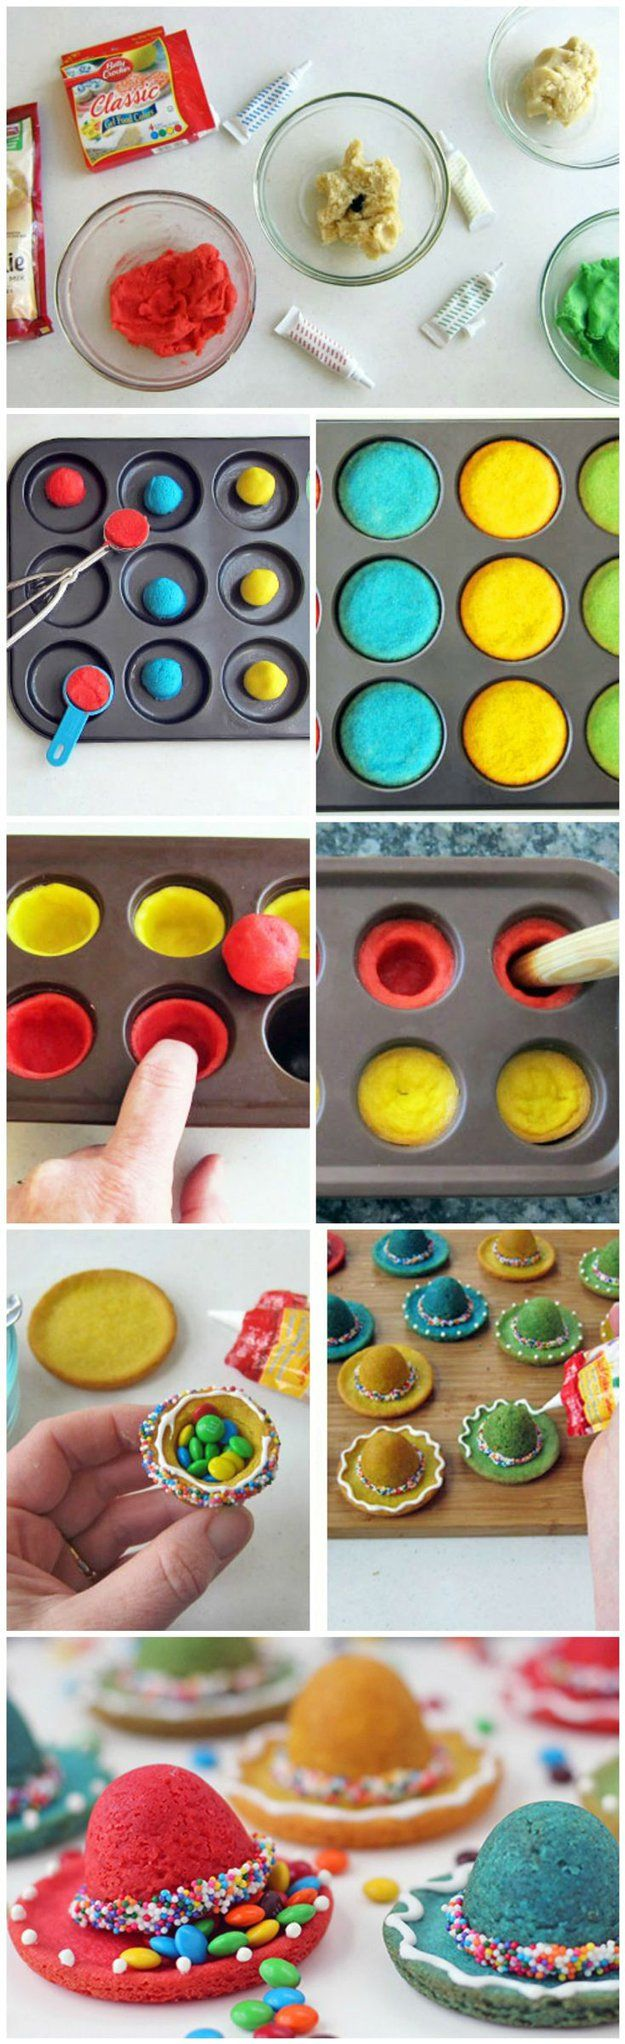 Awesome Cinco de Mayo Desserts | https://diyprojects.com/23-cinco-de-mayo-recipes-to-get-the-party-started/